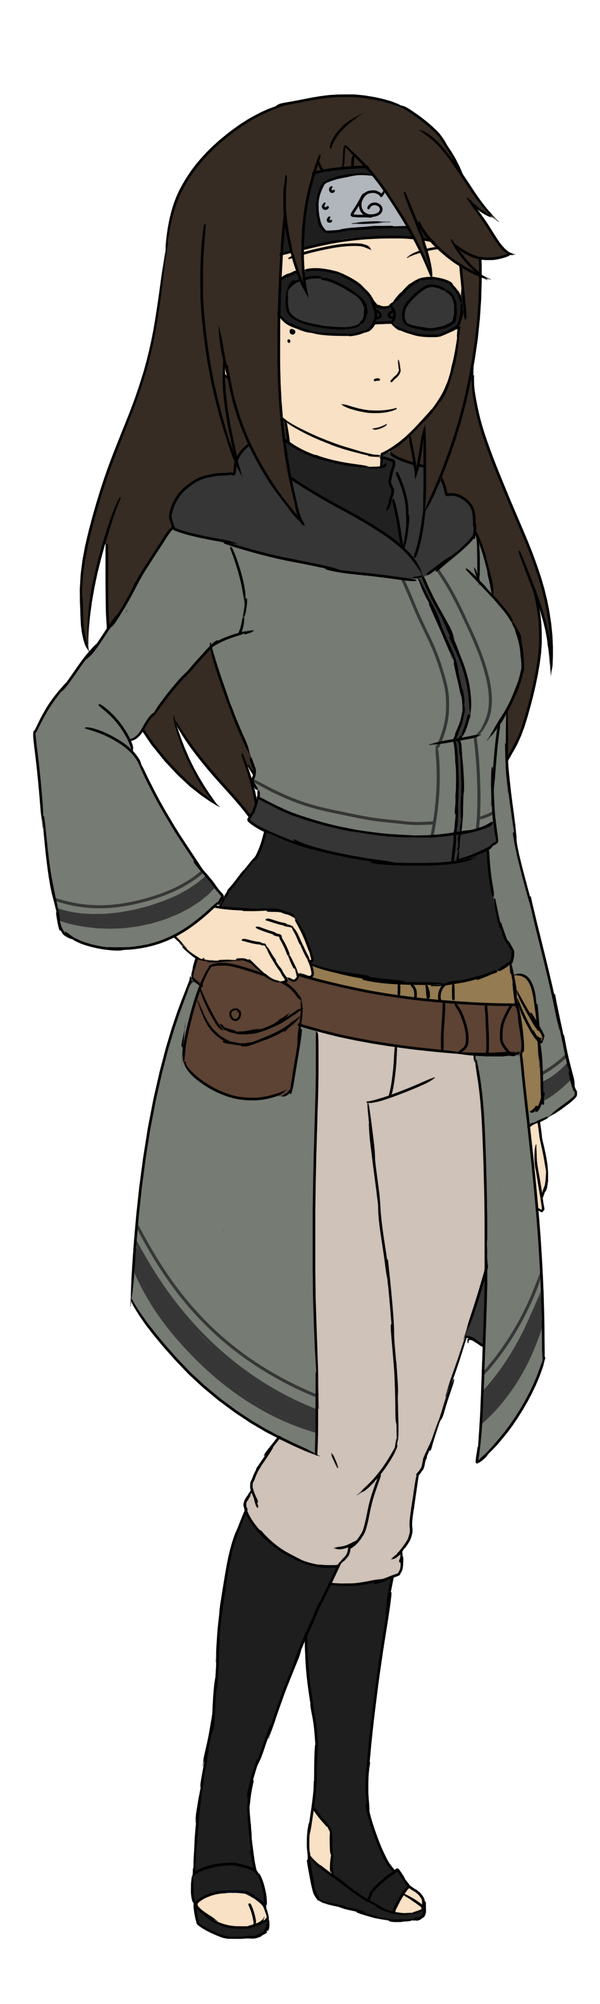 Naruto OC:: Rin Shippuden Redesign by infinitehearts on ...